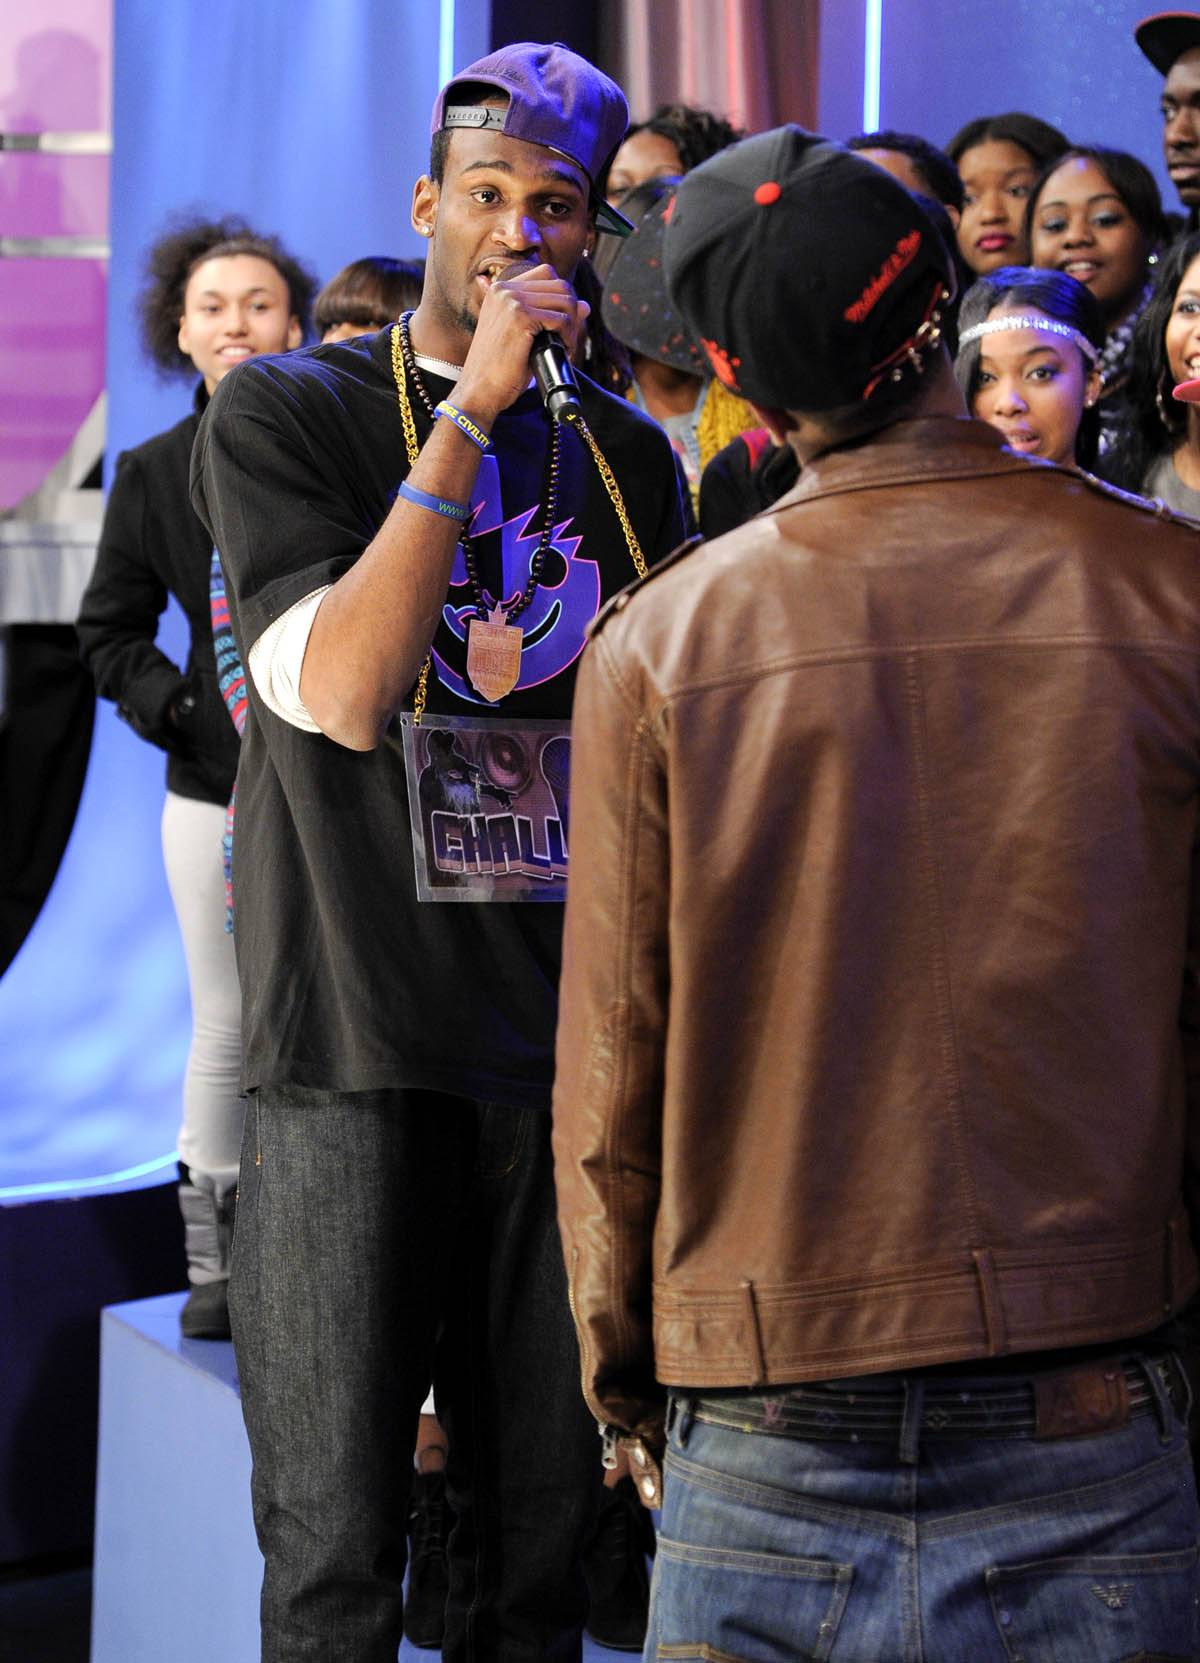 Spit Hard - Freestyle Friday challenger Rio the Raptor battles at 106 & Park, January 27, 2012. (Photo: John Ricard / BET)